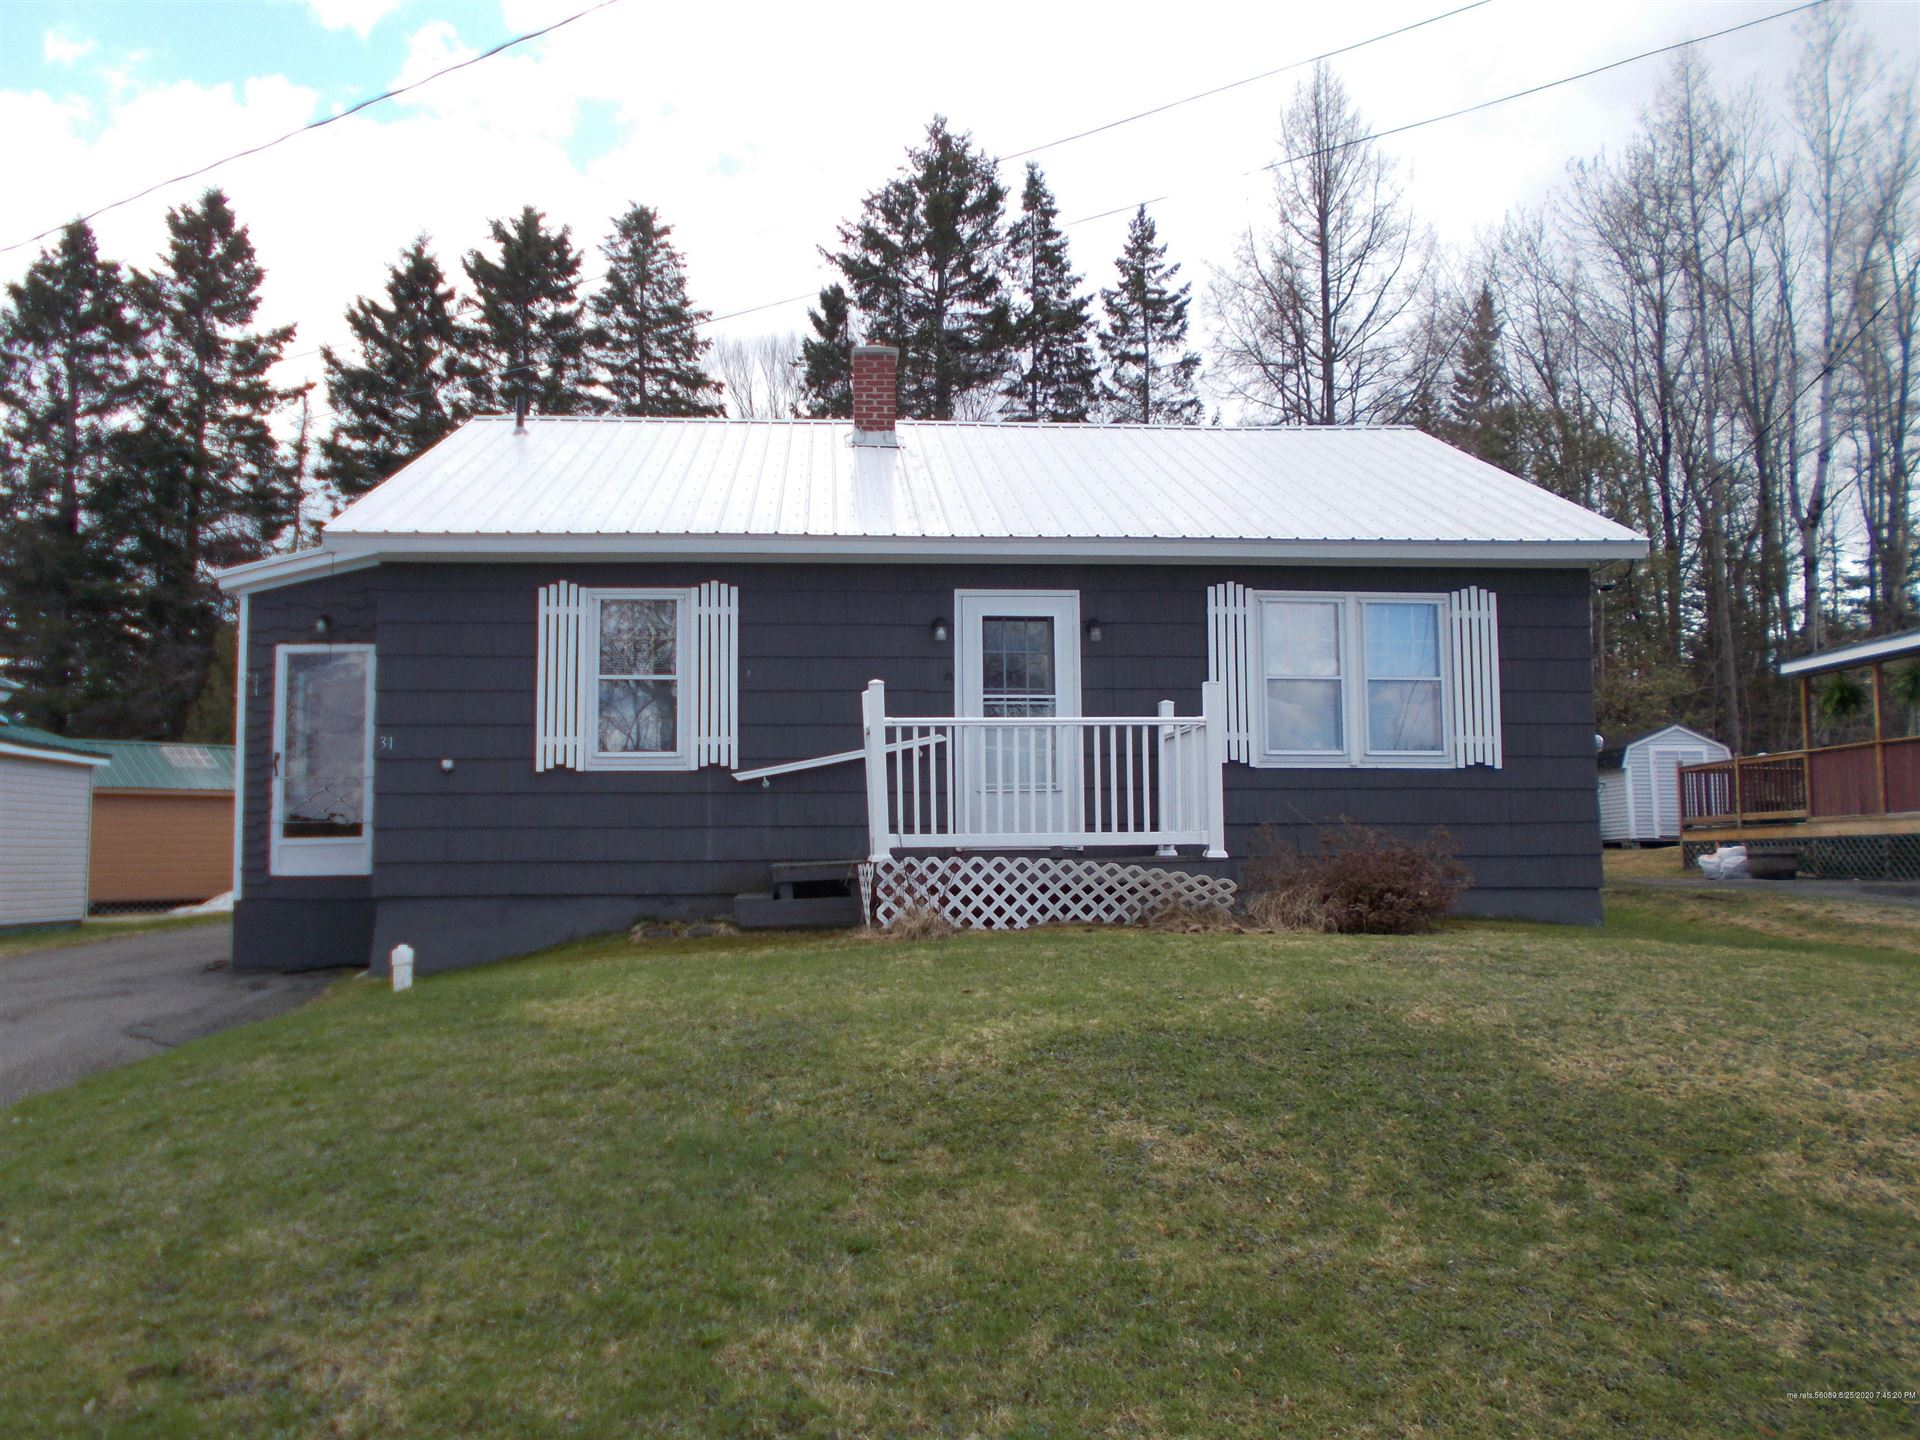 Photo of 31 School Avenue, Limestone, ME 04750 (MLS # 1440869)